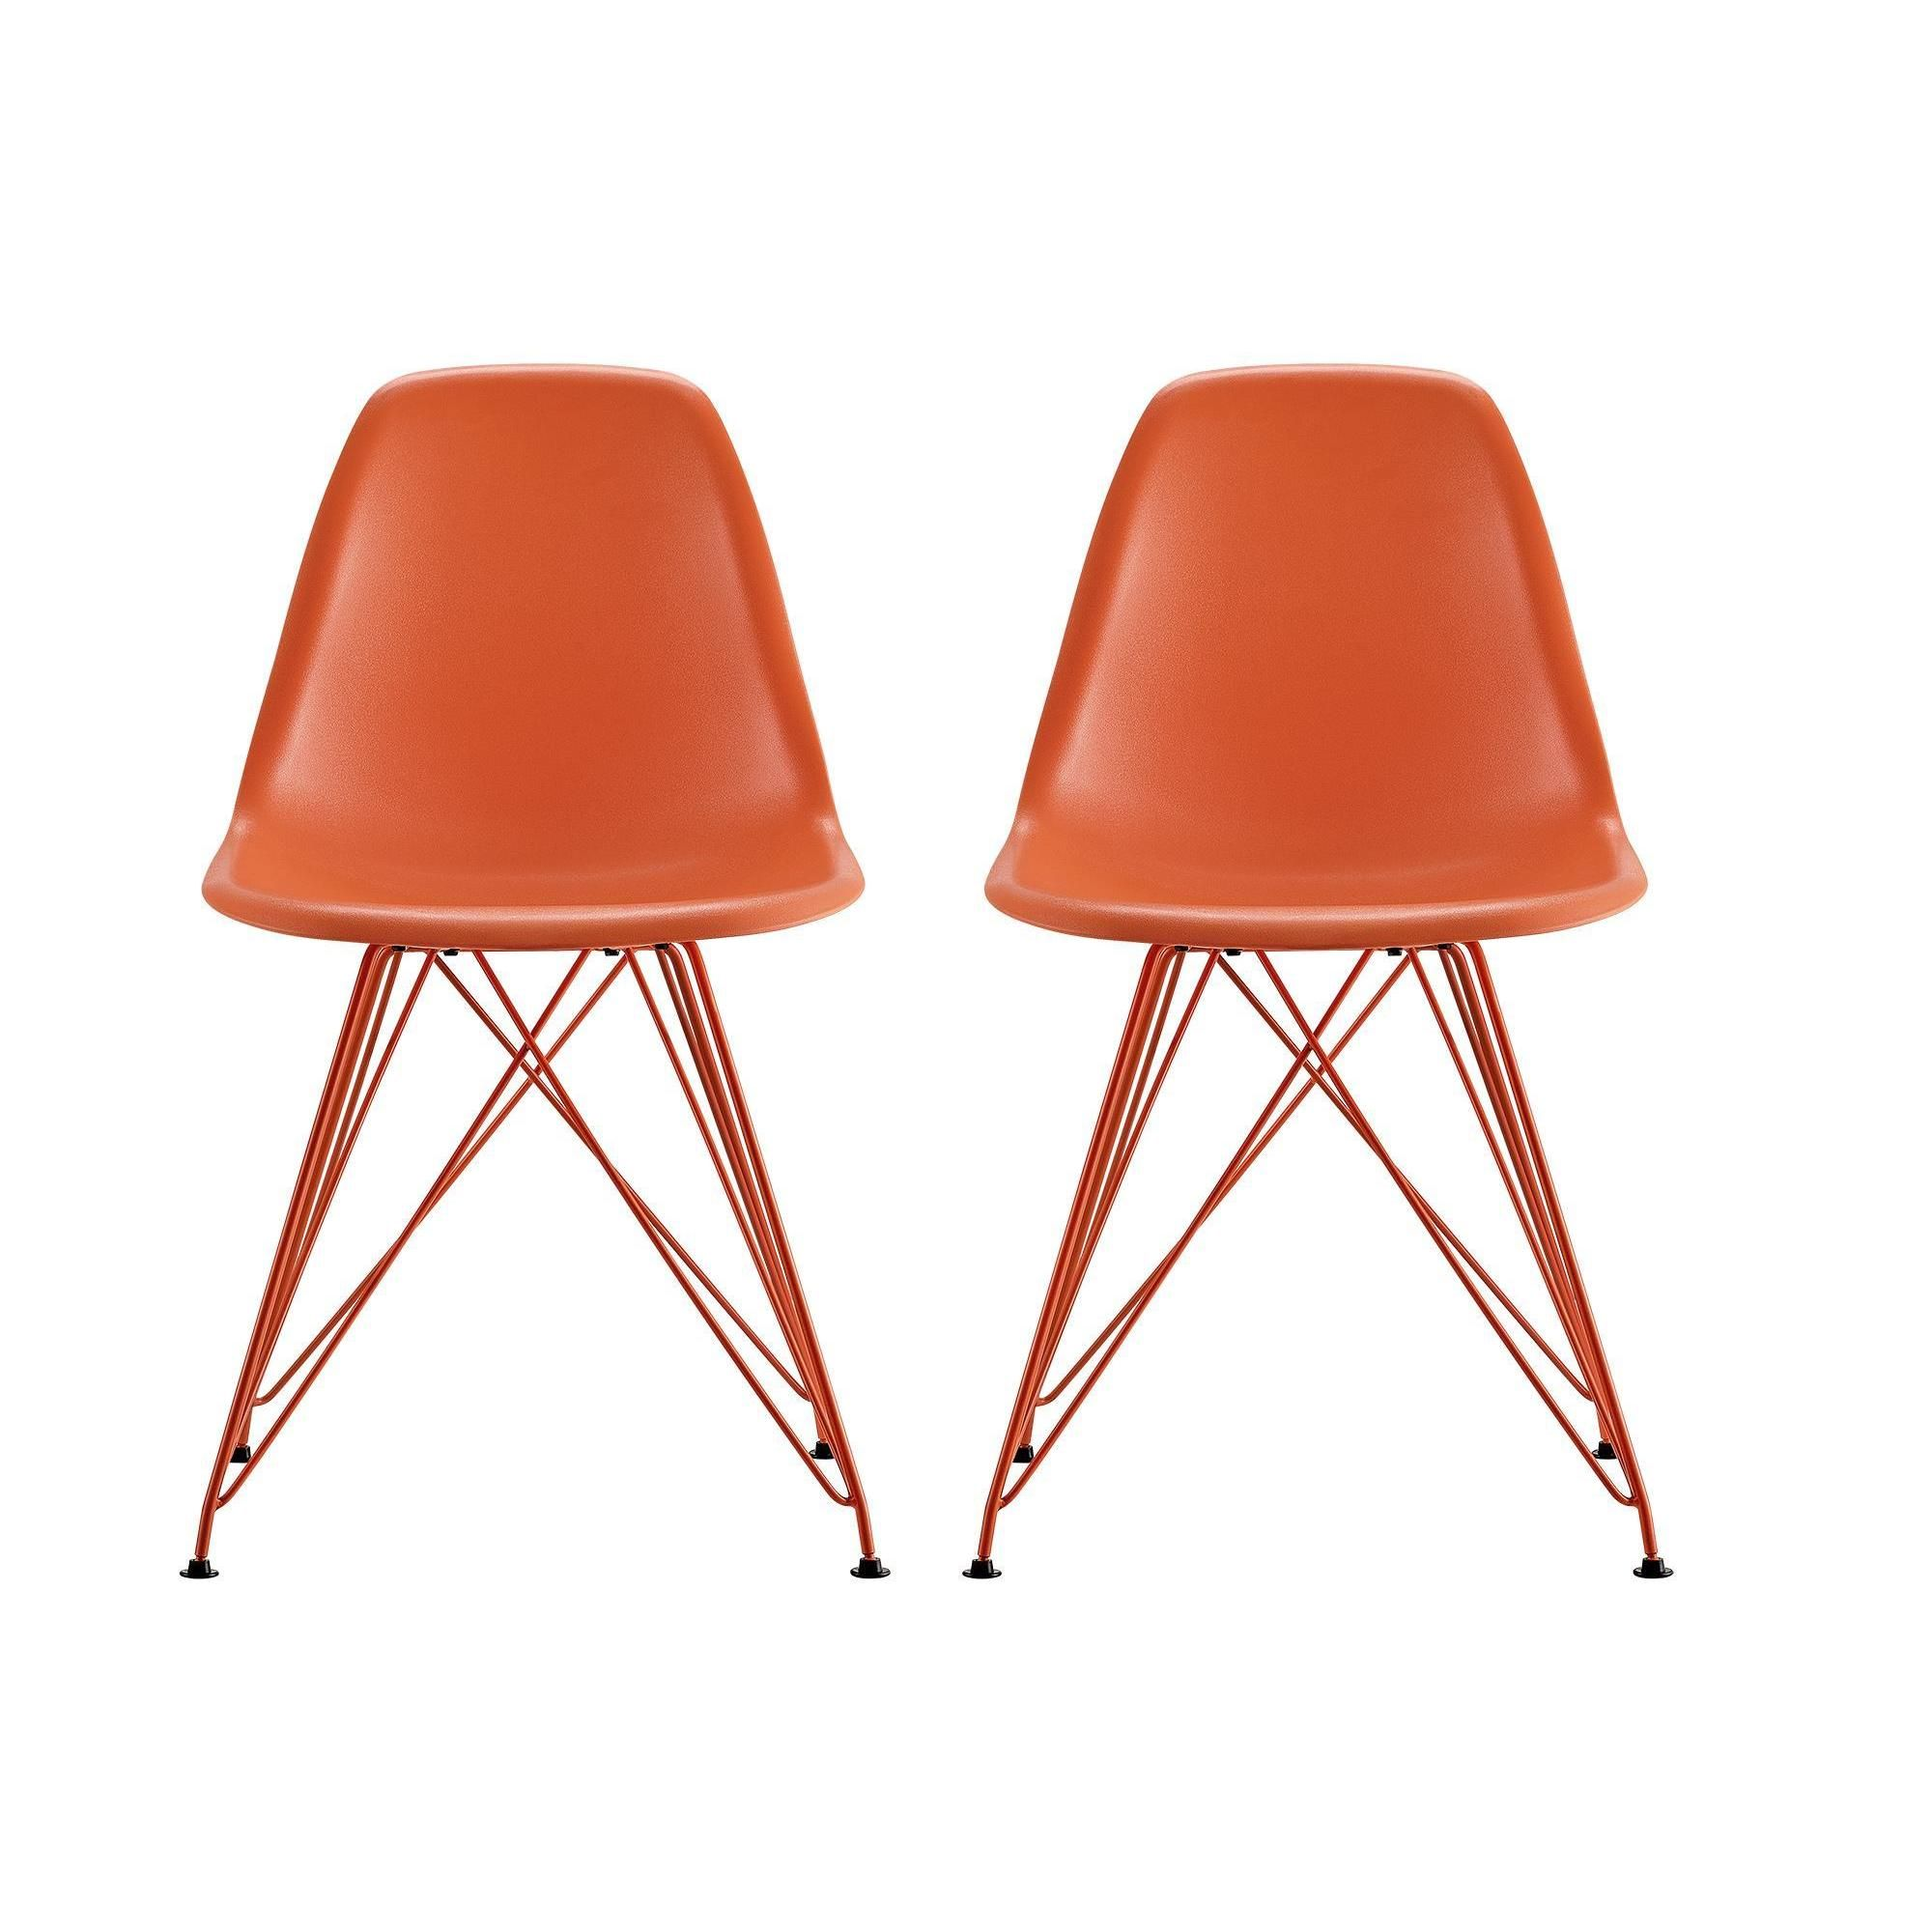 These chairs are modeled after eames iconic mid century for Iconic modern chairs